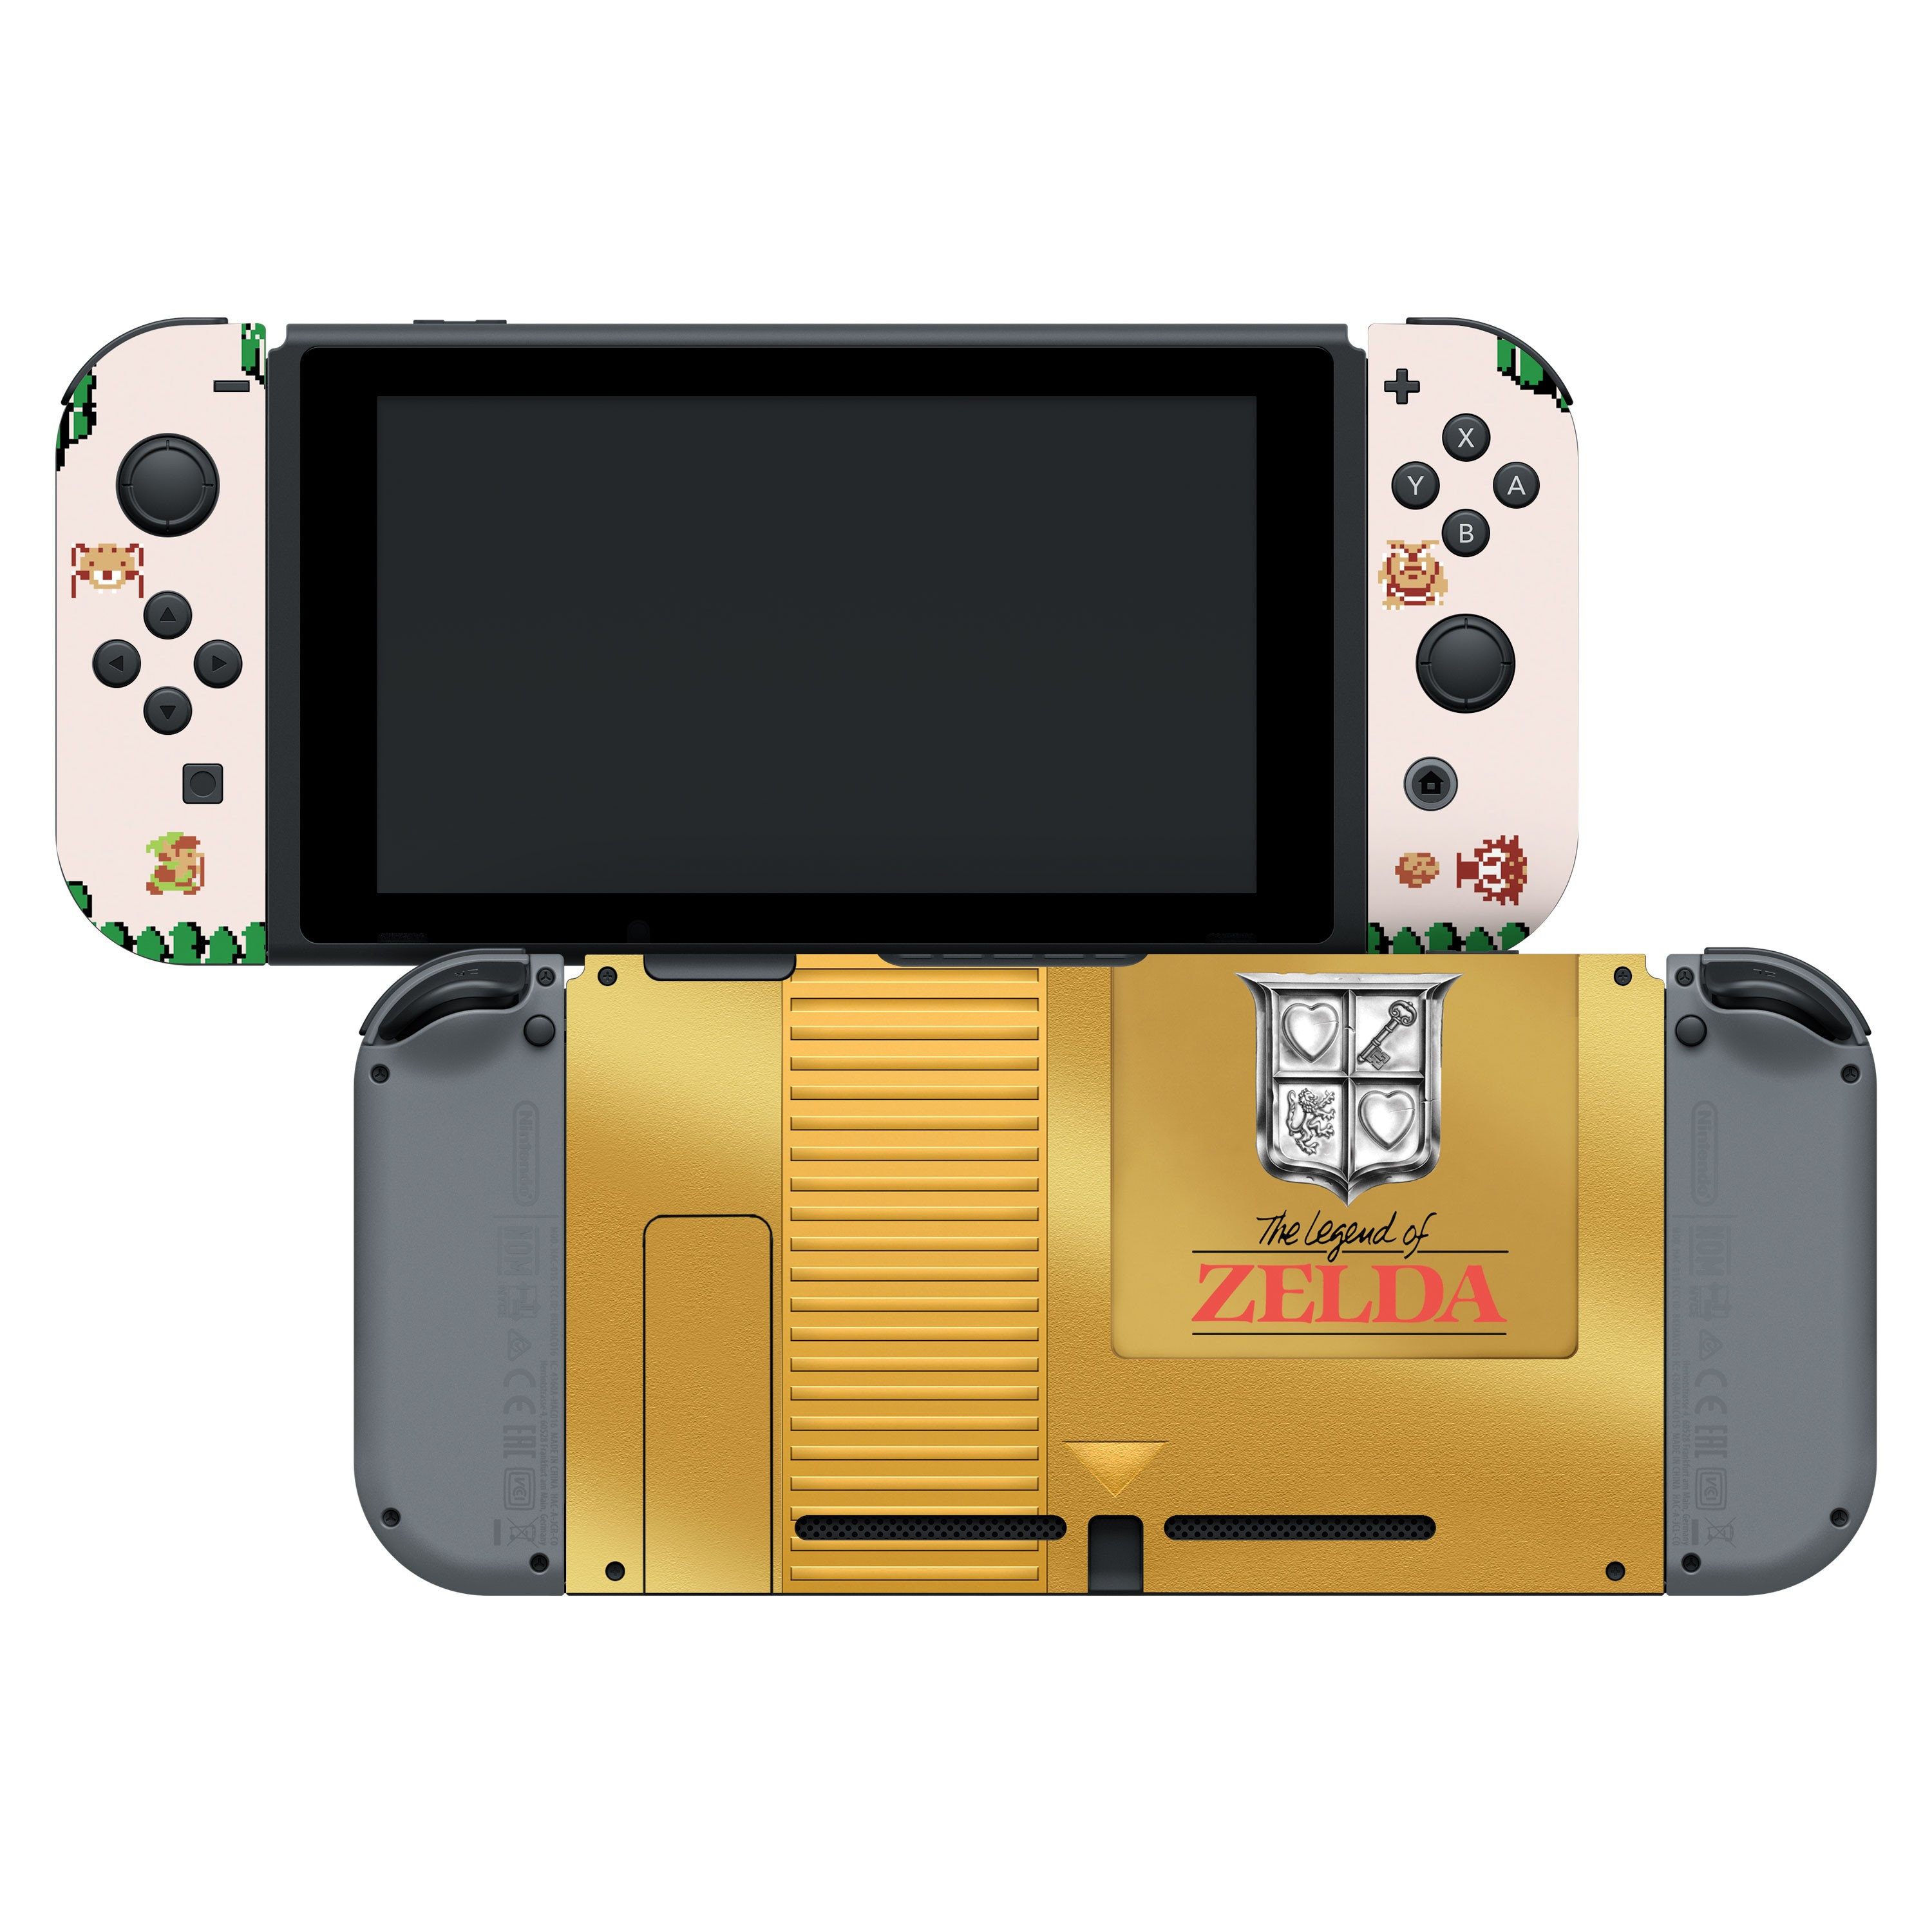 "The Legend of Zelda™ ""Gold Cartridge"" Nintendo Switch™ Console Skin + Joy-Con™ Skin + Joy-Con™ Grip Skin + Screen Protector Bundle Assortment, Officially Licensed by Nintendo"